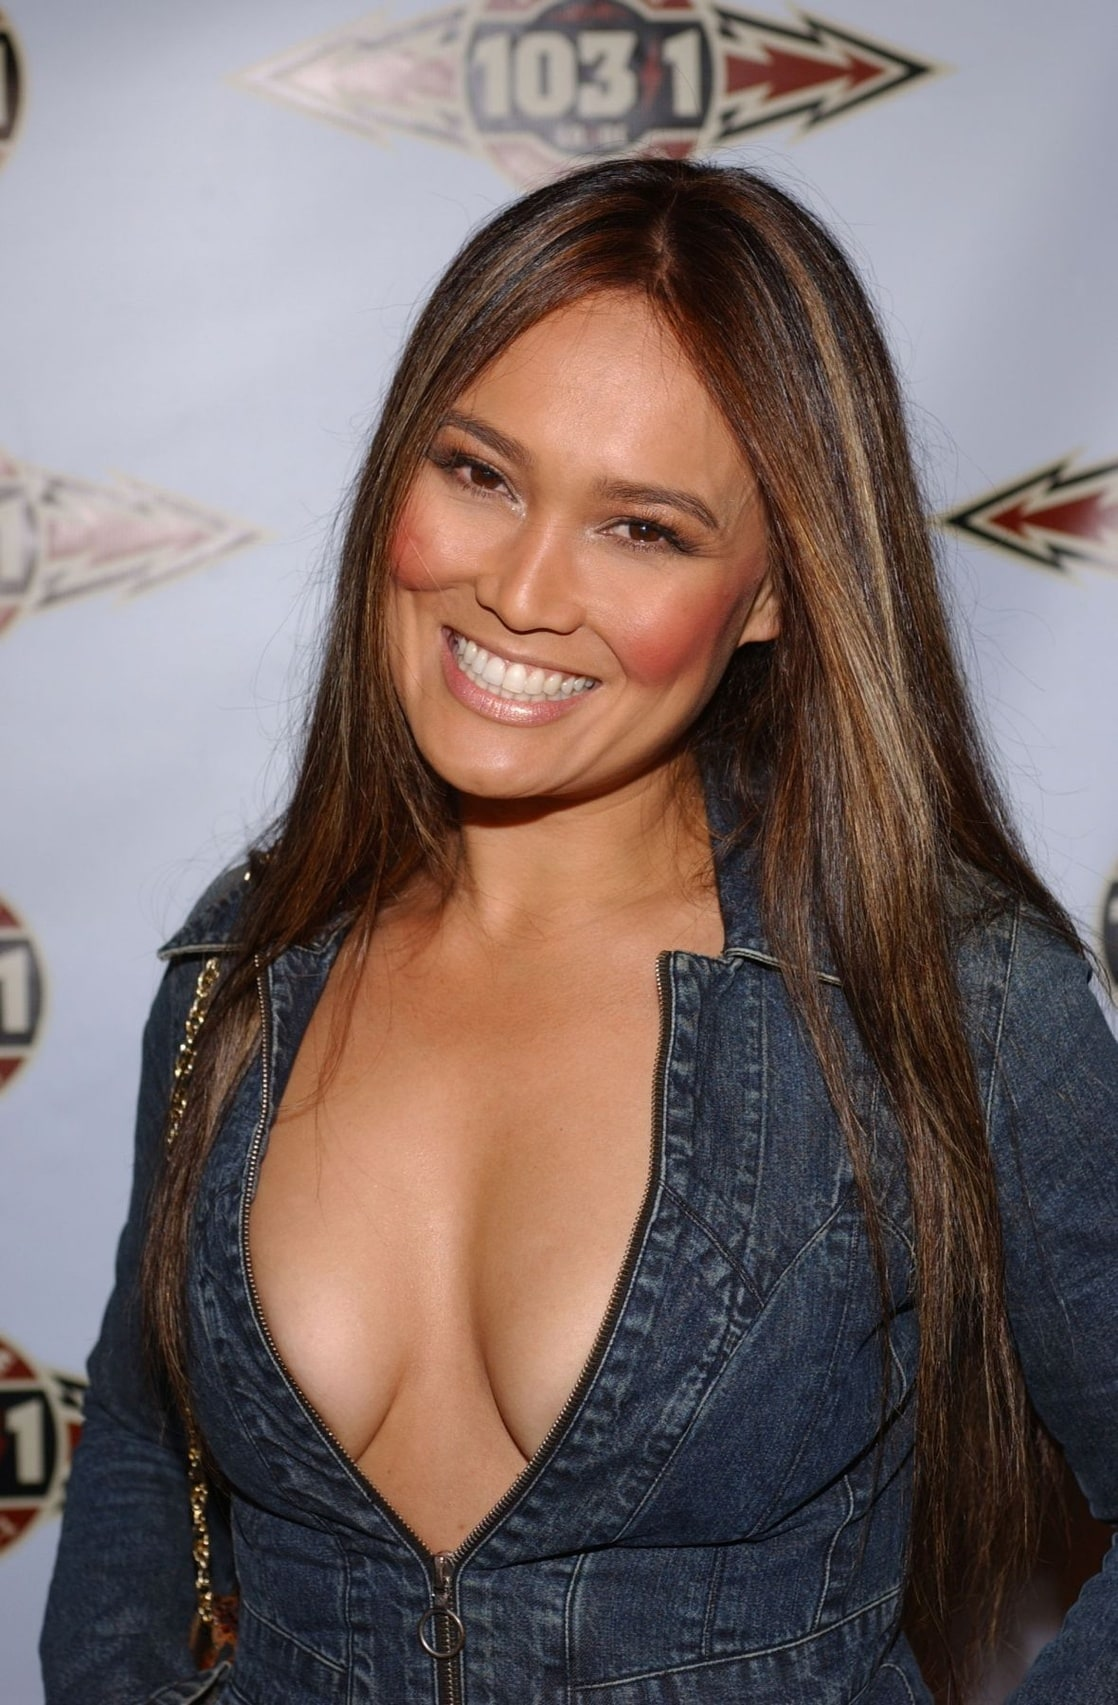 The cleavage thread! 1118full-tia-carrere